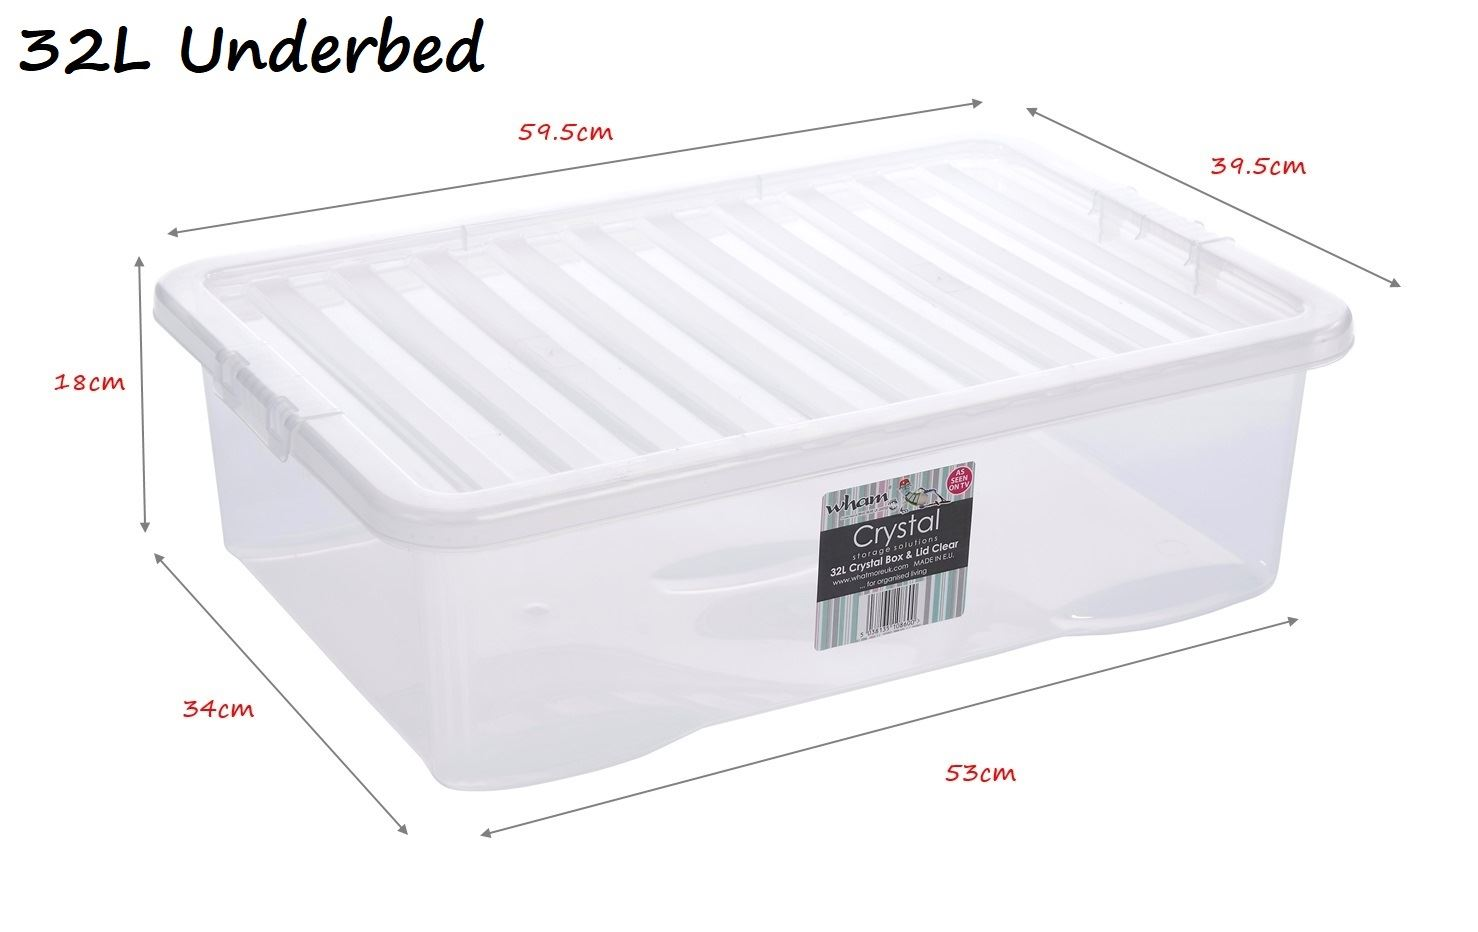 Clear Box Clear Plastic Storage Boxes Box Container W Lids Home